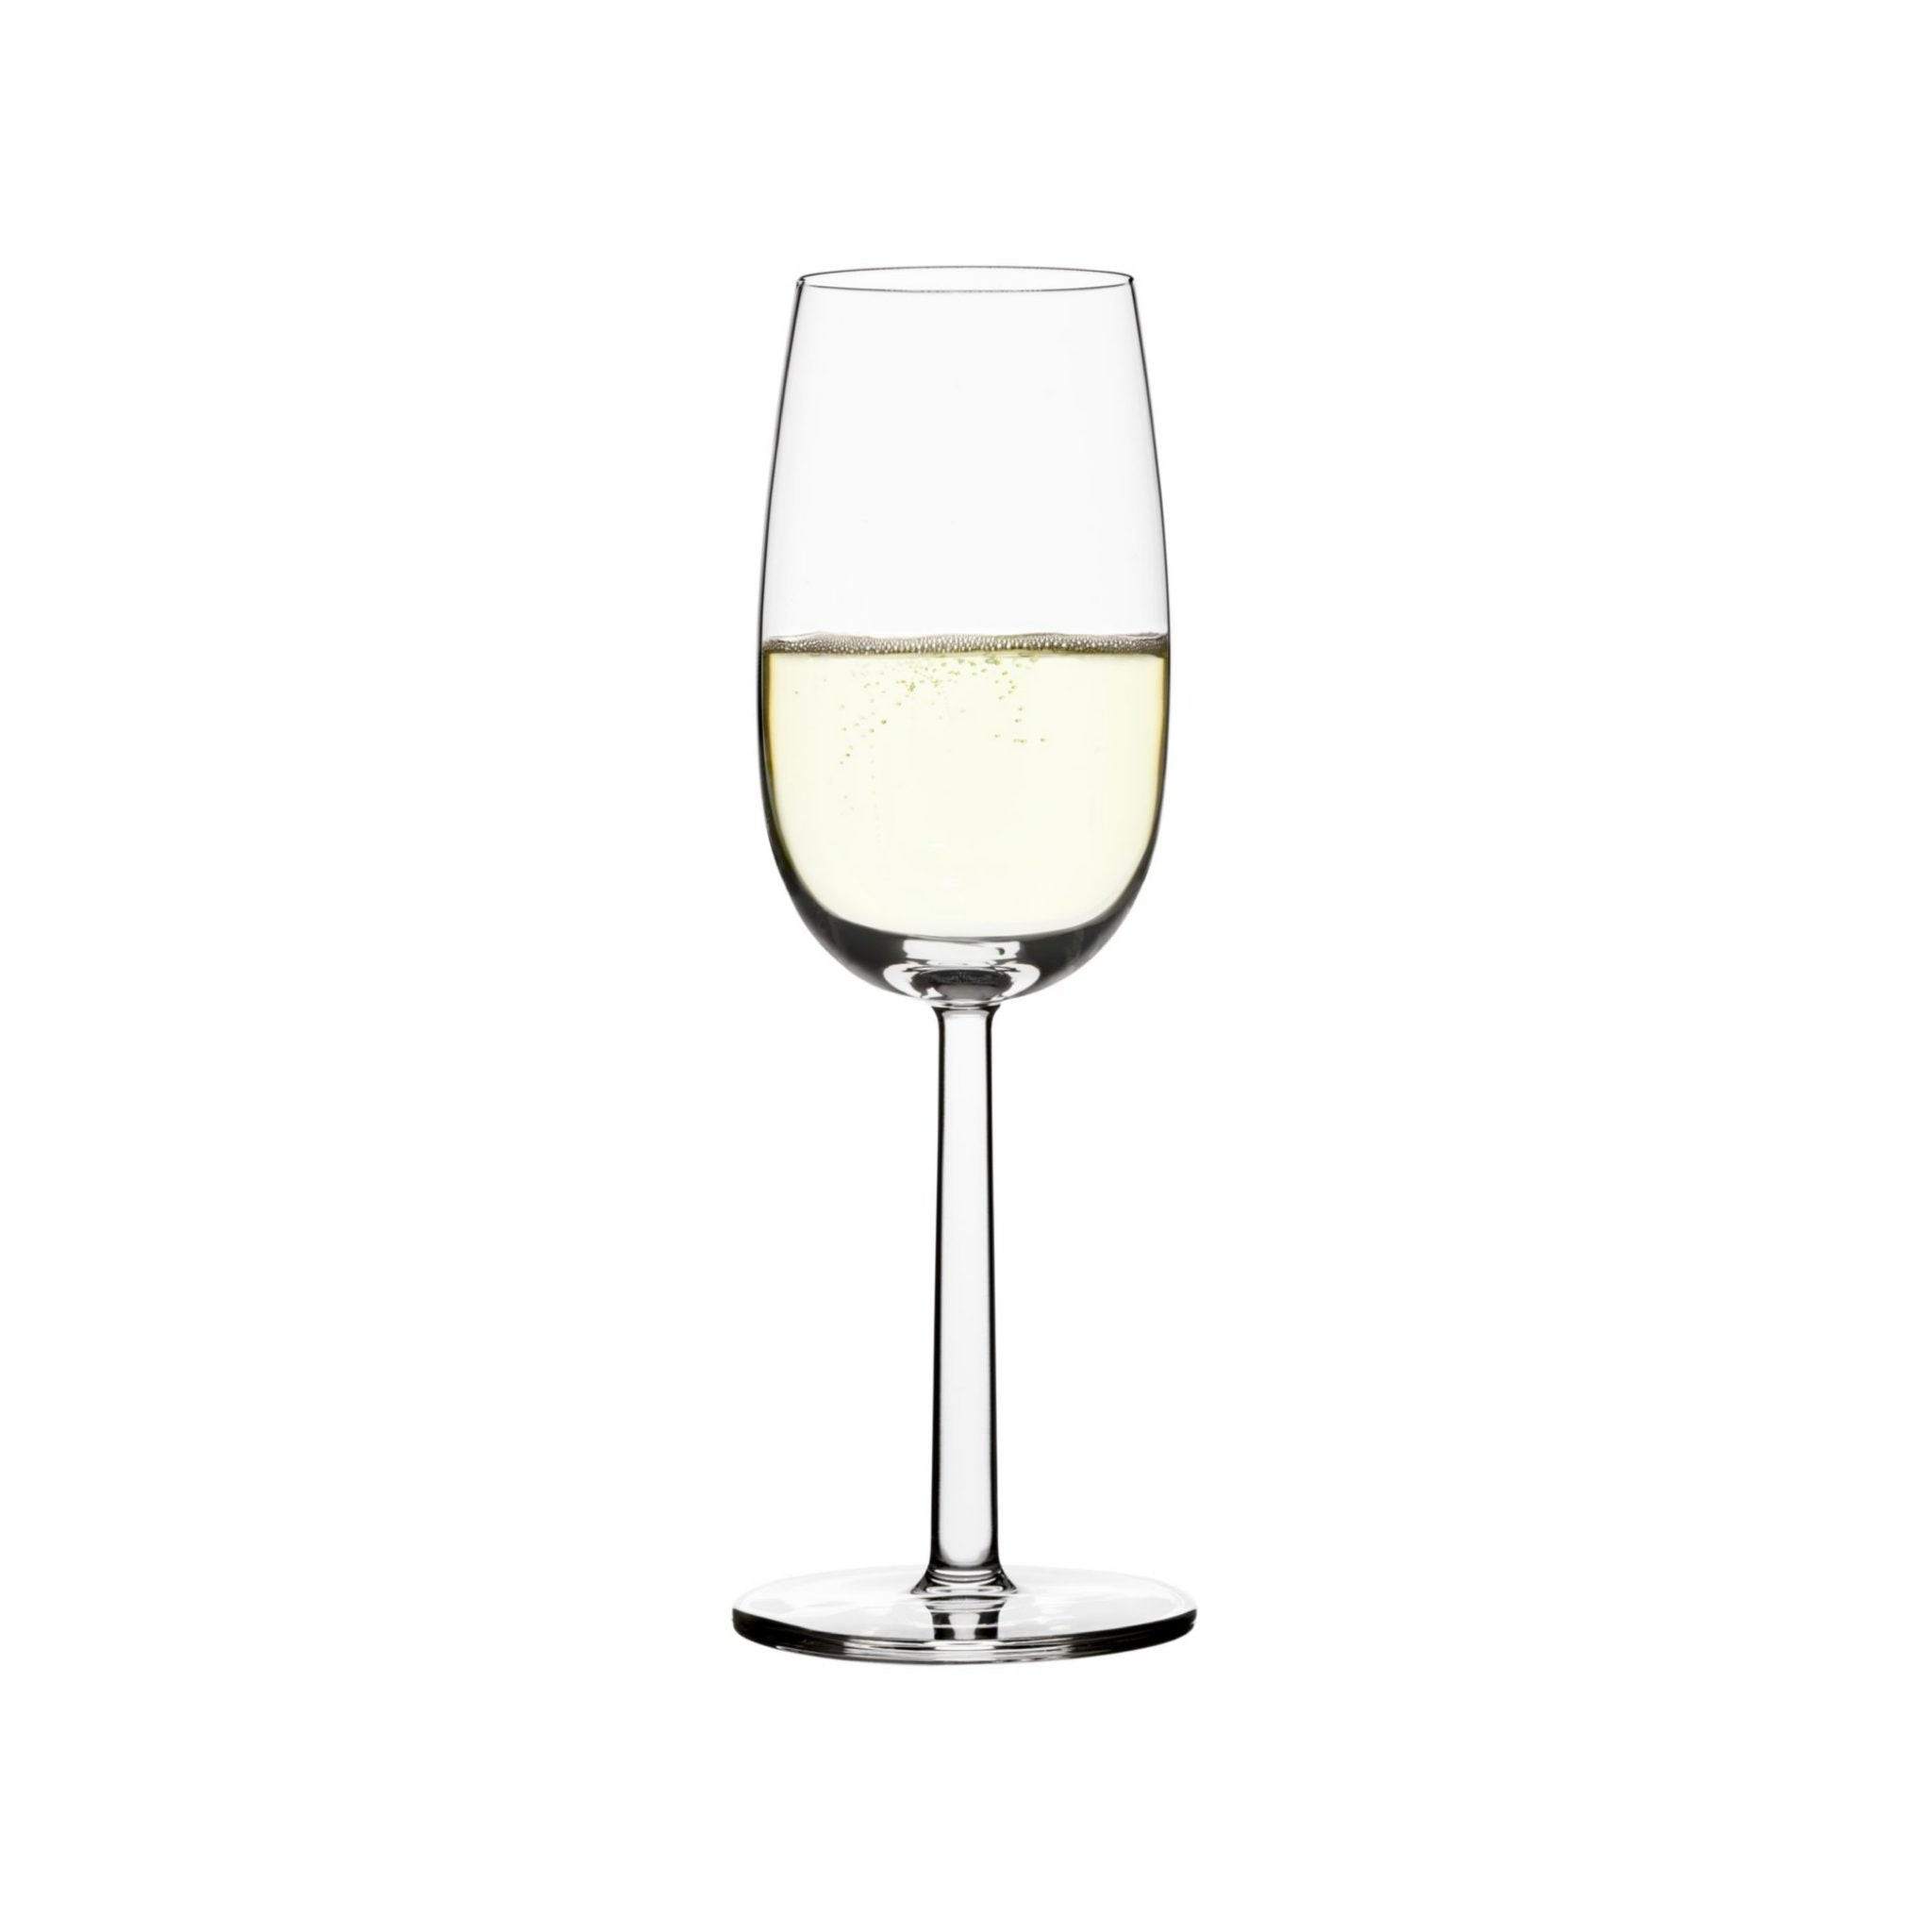 Raami Sparkling Wine Glass by Iittala